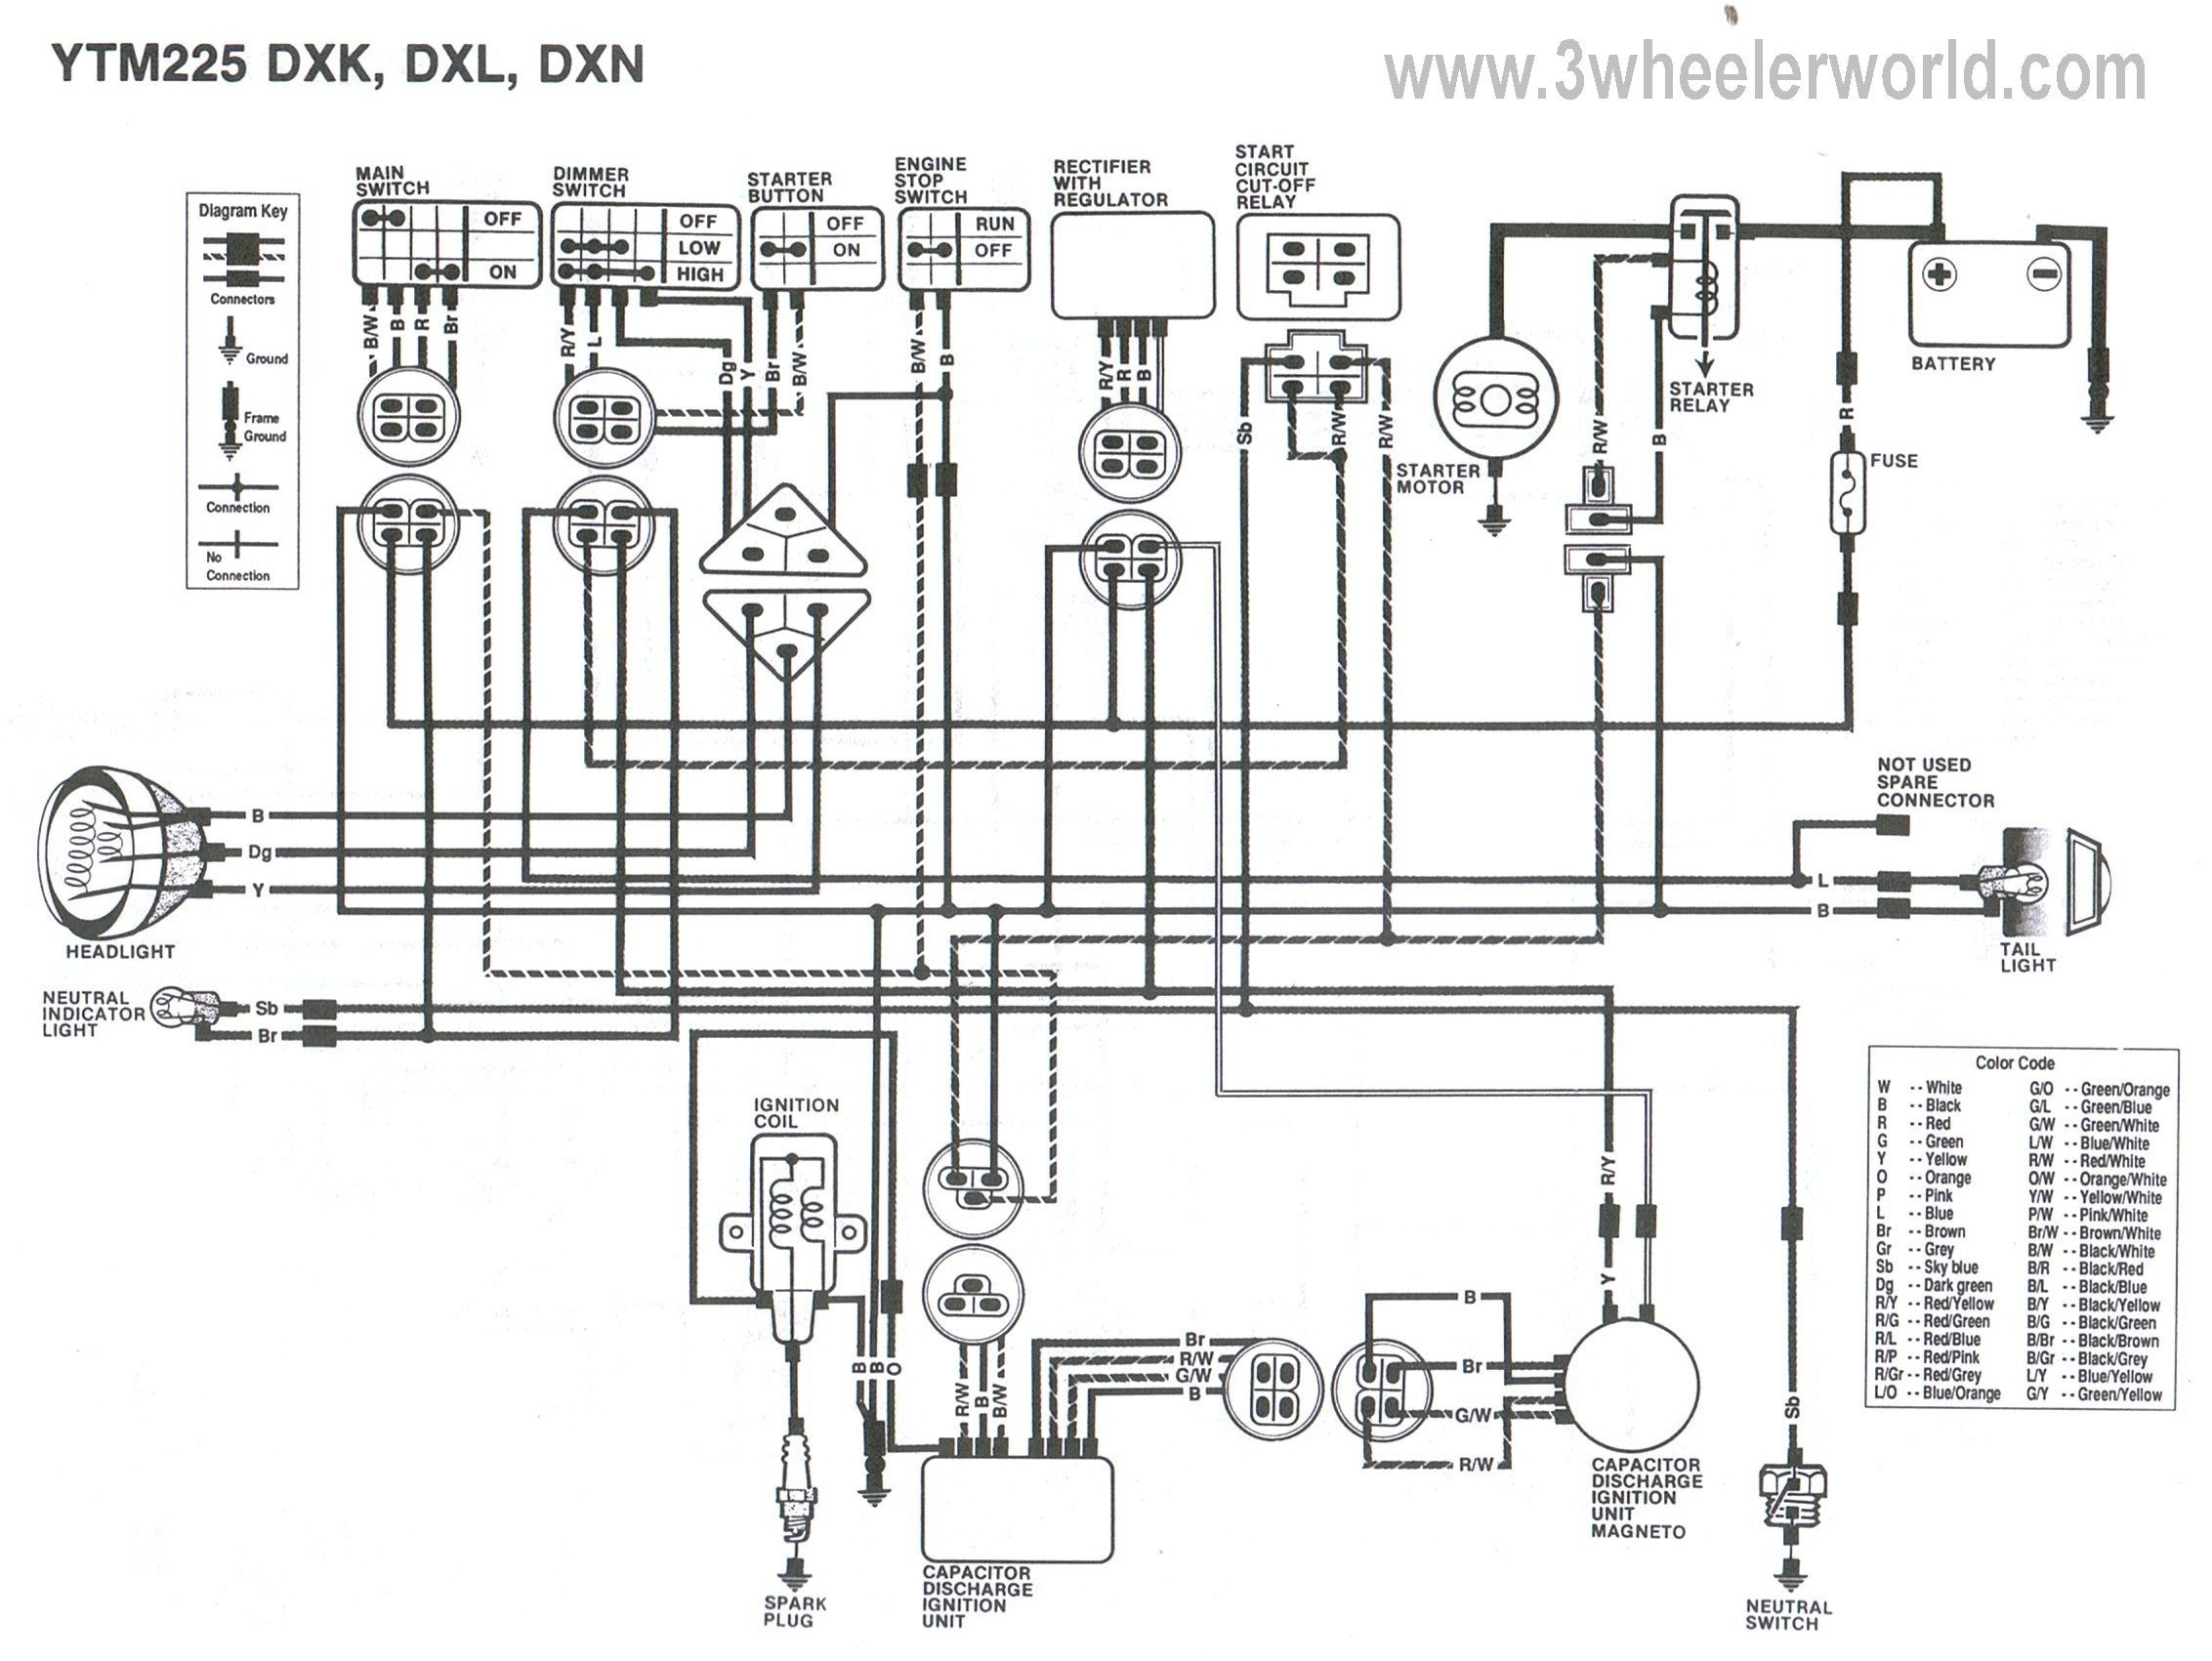 Gn400 Wiring Diagram - Laptop Fan Wire Diagram | Bege Wiring DiagramBege Place Wiring Diagram - Bege Wiring Diagram